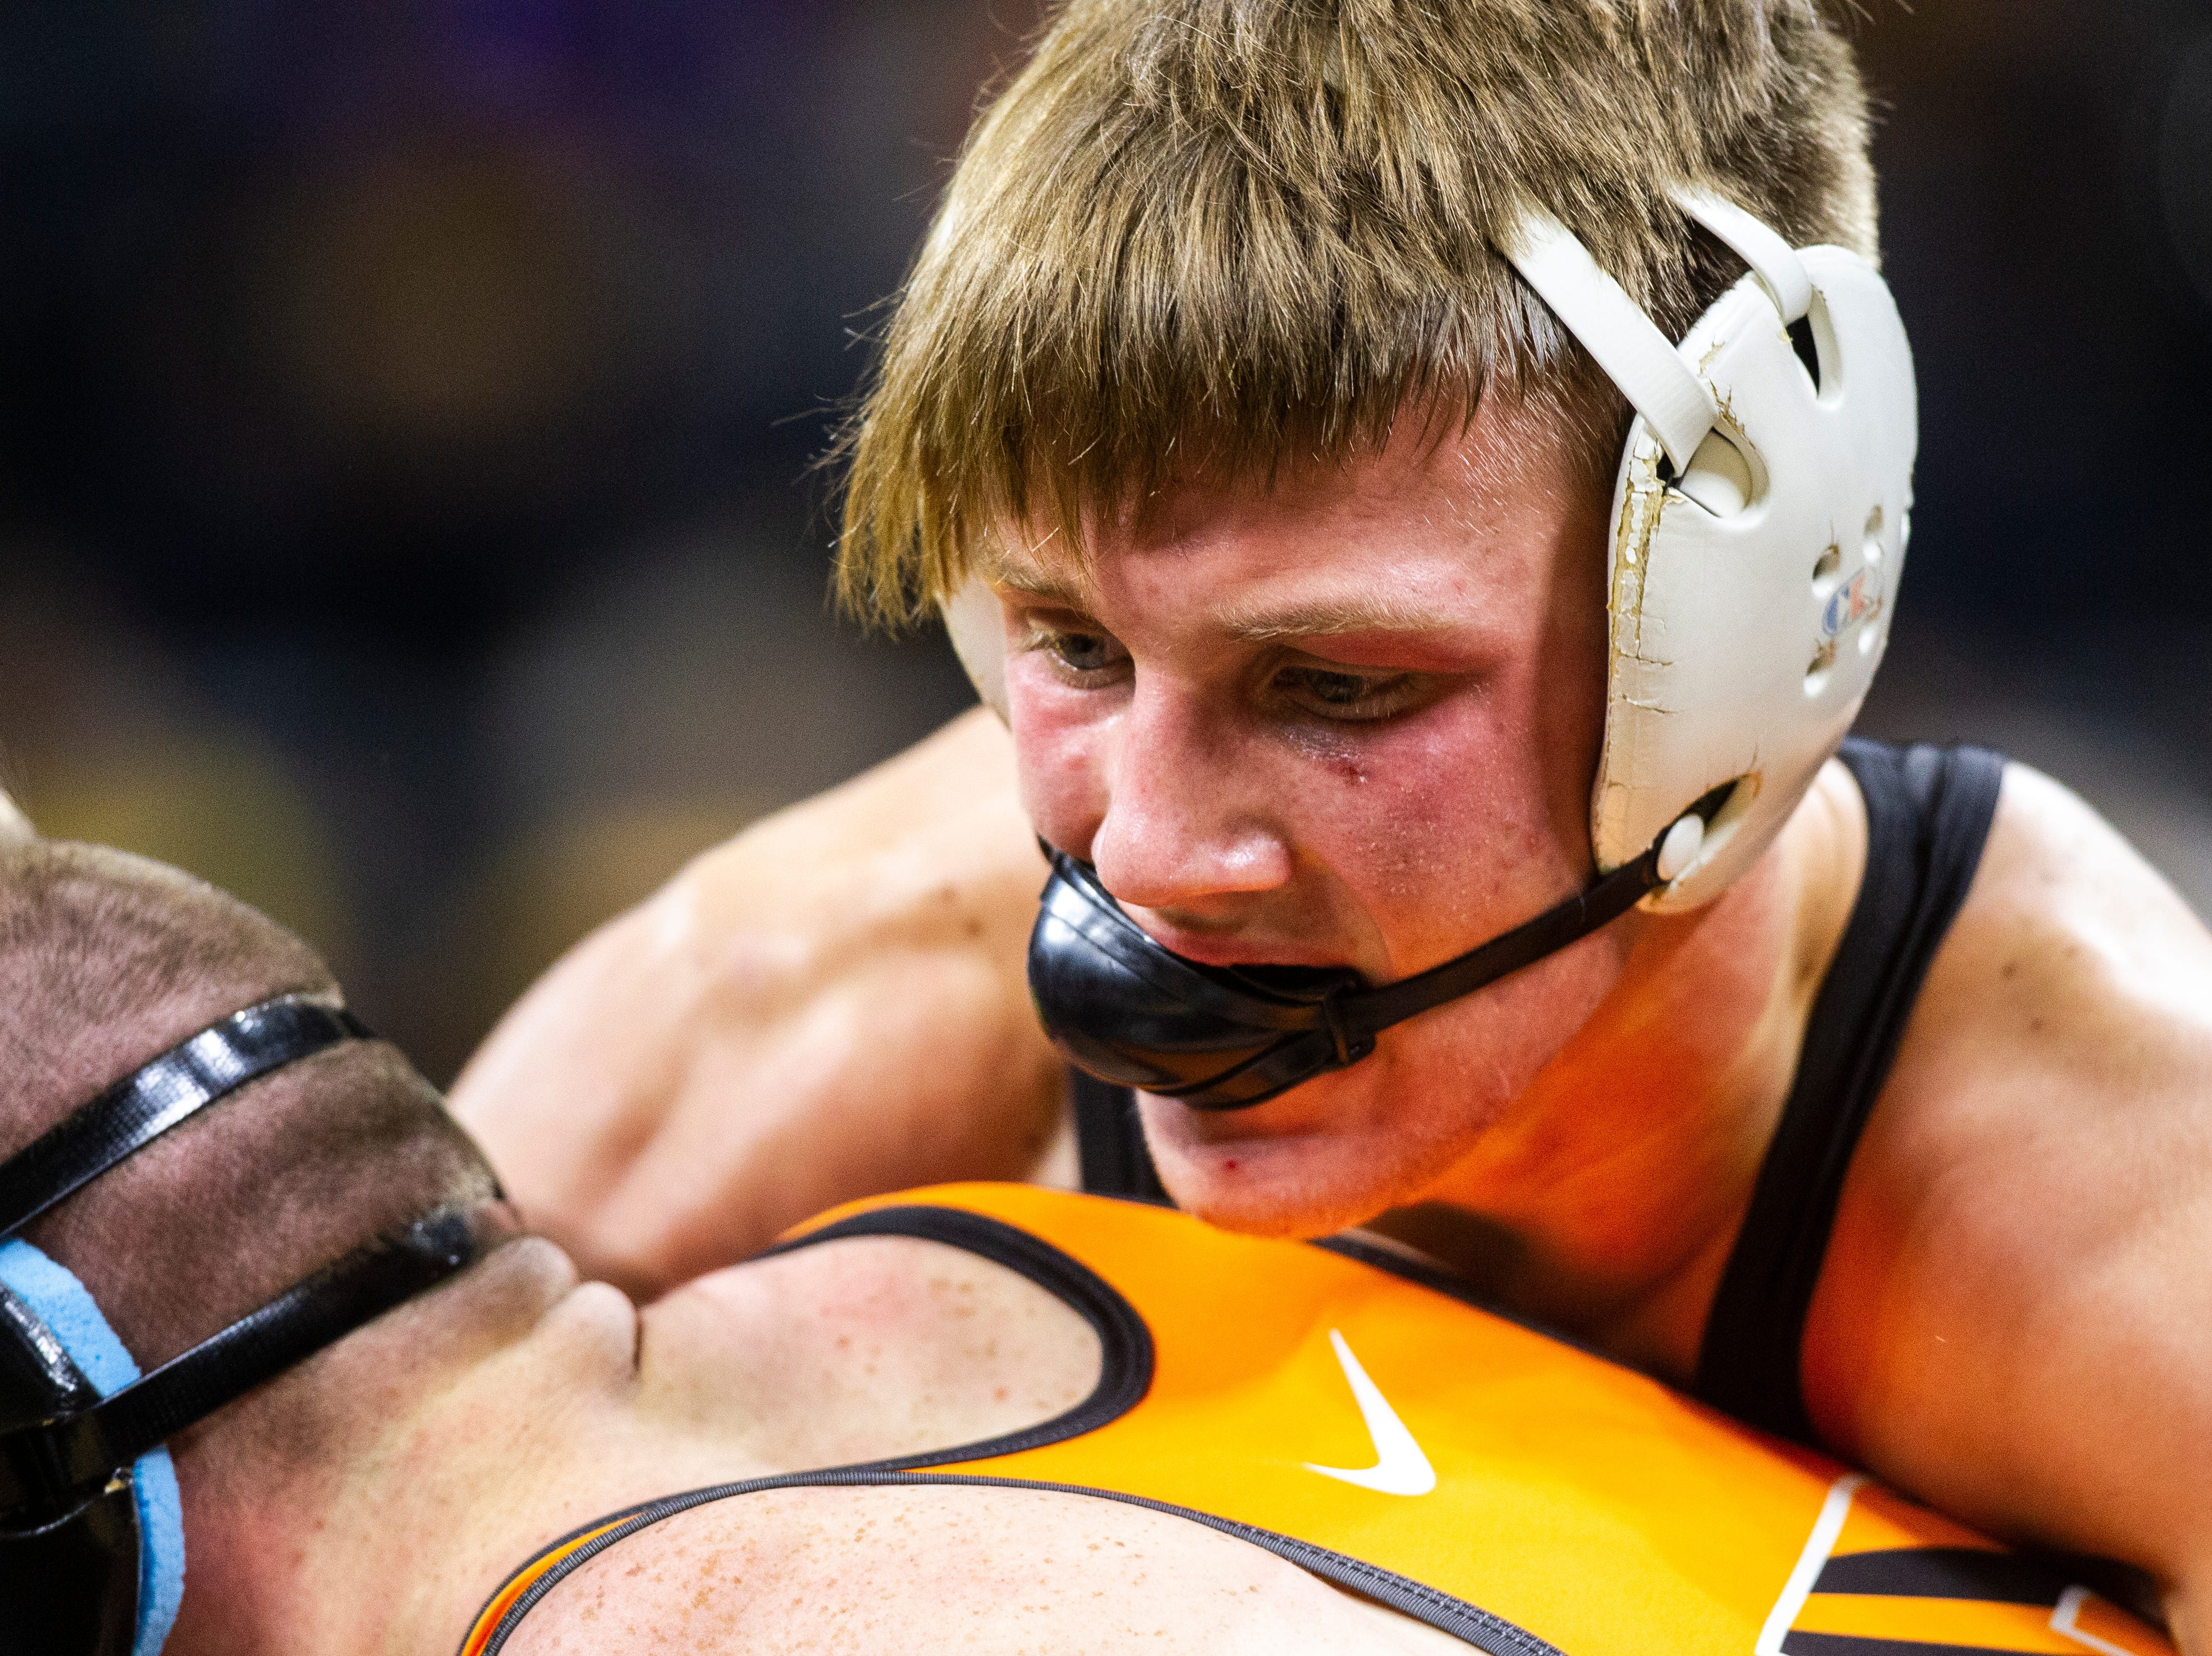 Iowa's Max Murin (right) wrestles Princeton's Marshall Keller at 141 during an NCAA wrestling dual on Friday, Nov. 16, 2018, at Carver-Hawkeye Arena in Iowa City.